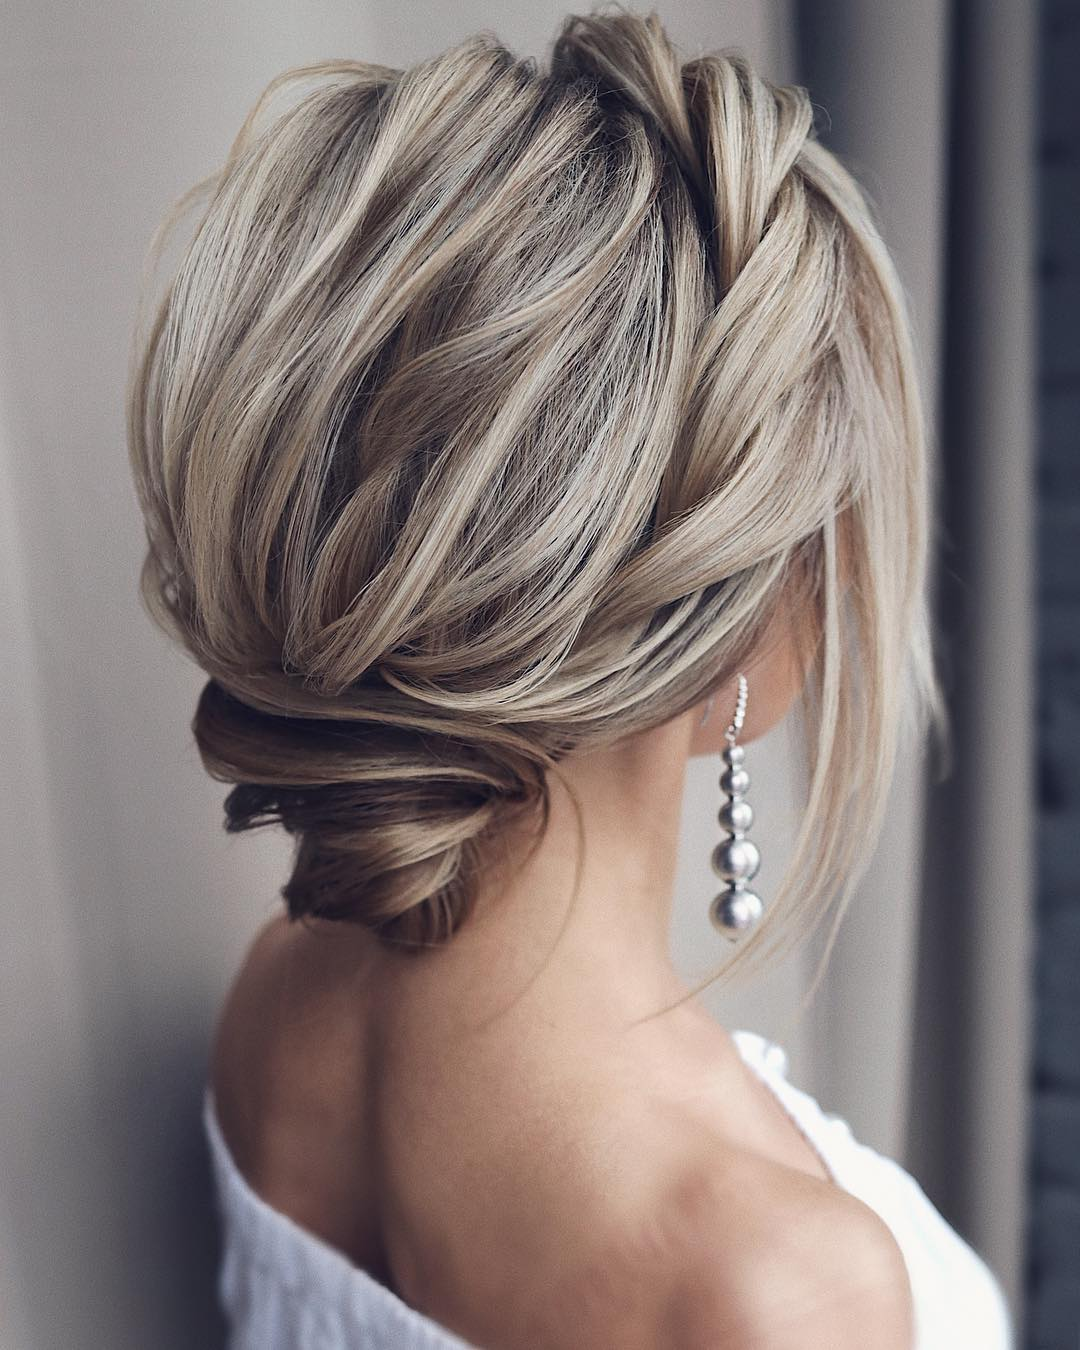 50 Lovely Updo Hairstyles That Are Trendy For 2020